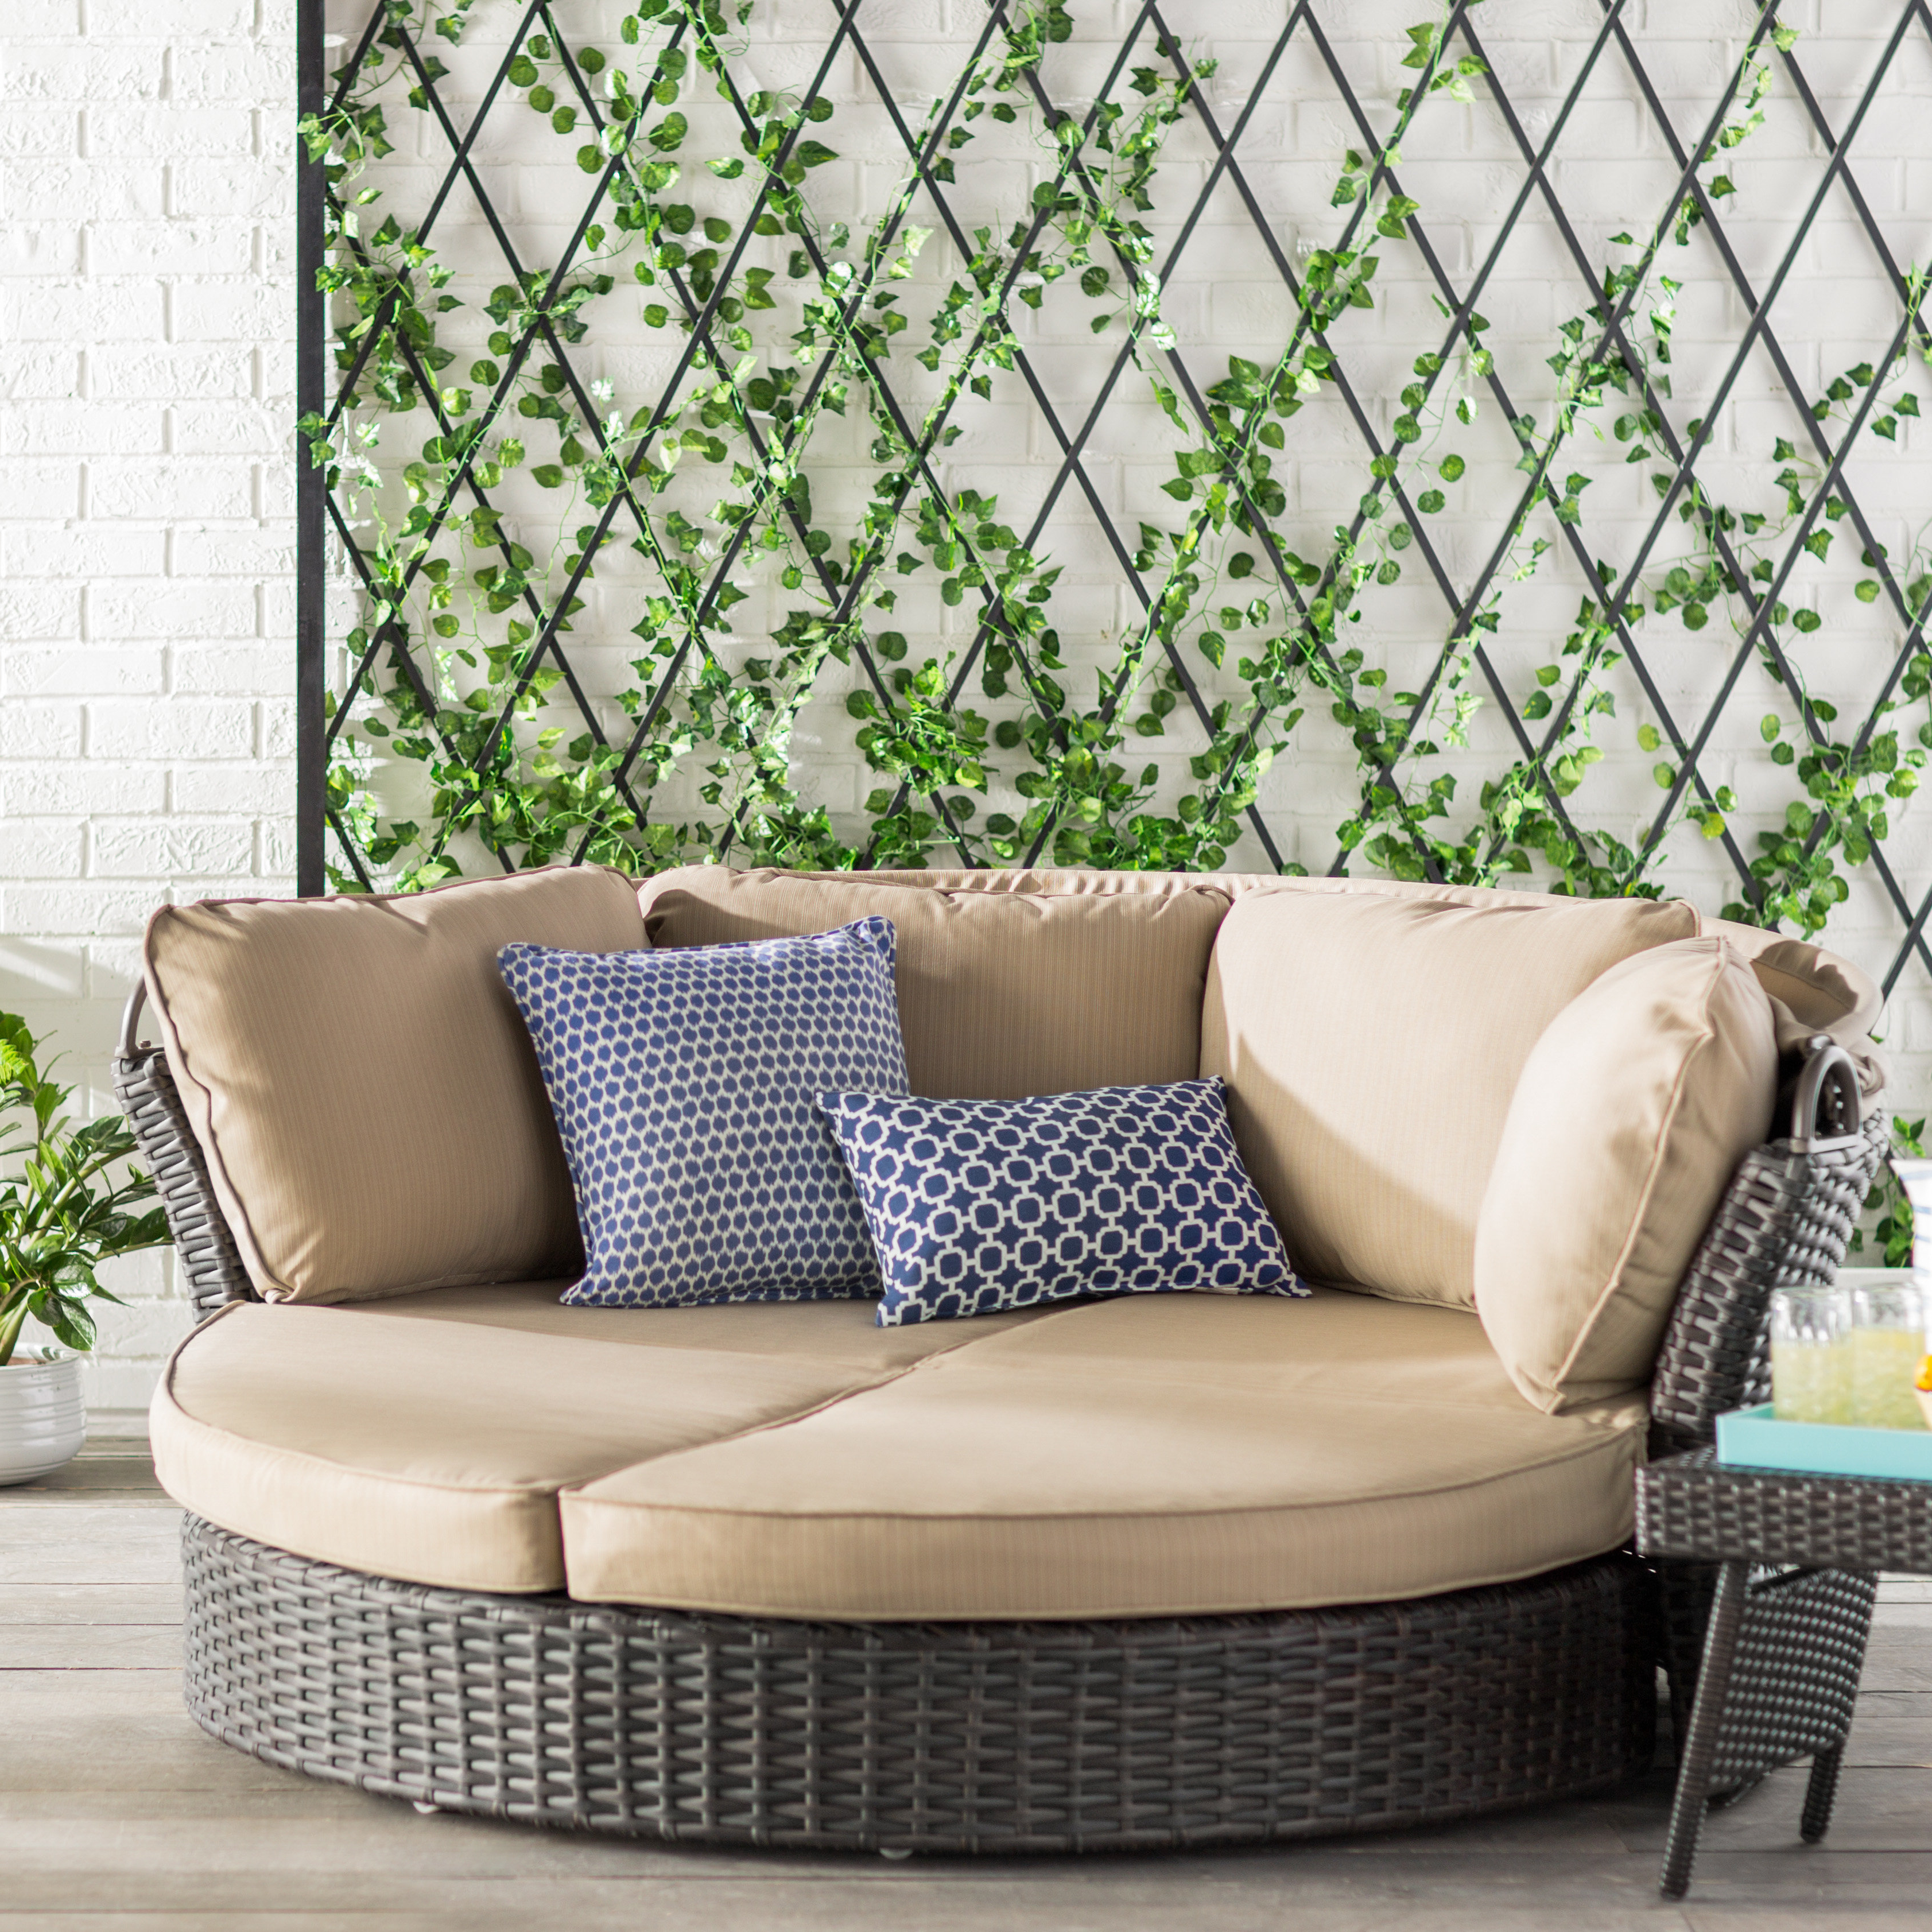 Allmodern With Famous Aubrie Patio Daybeds With Cushions (View 2 of 25)